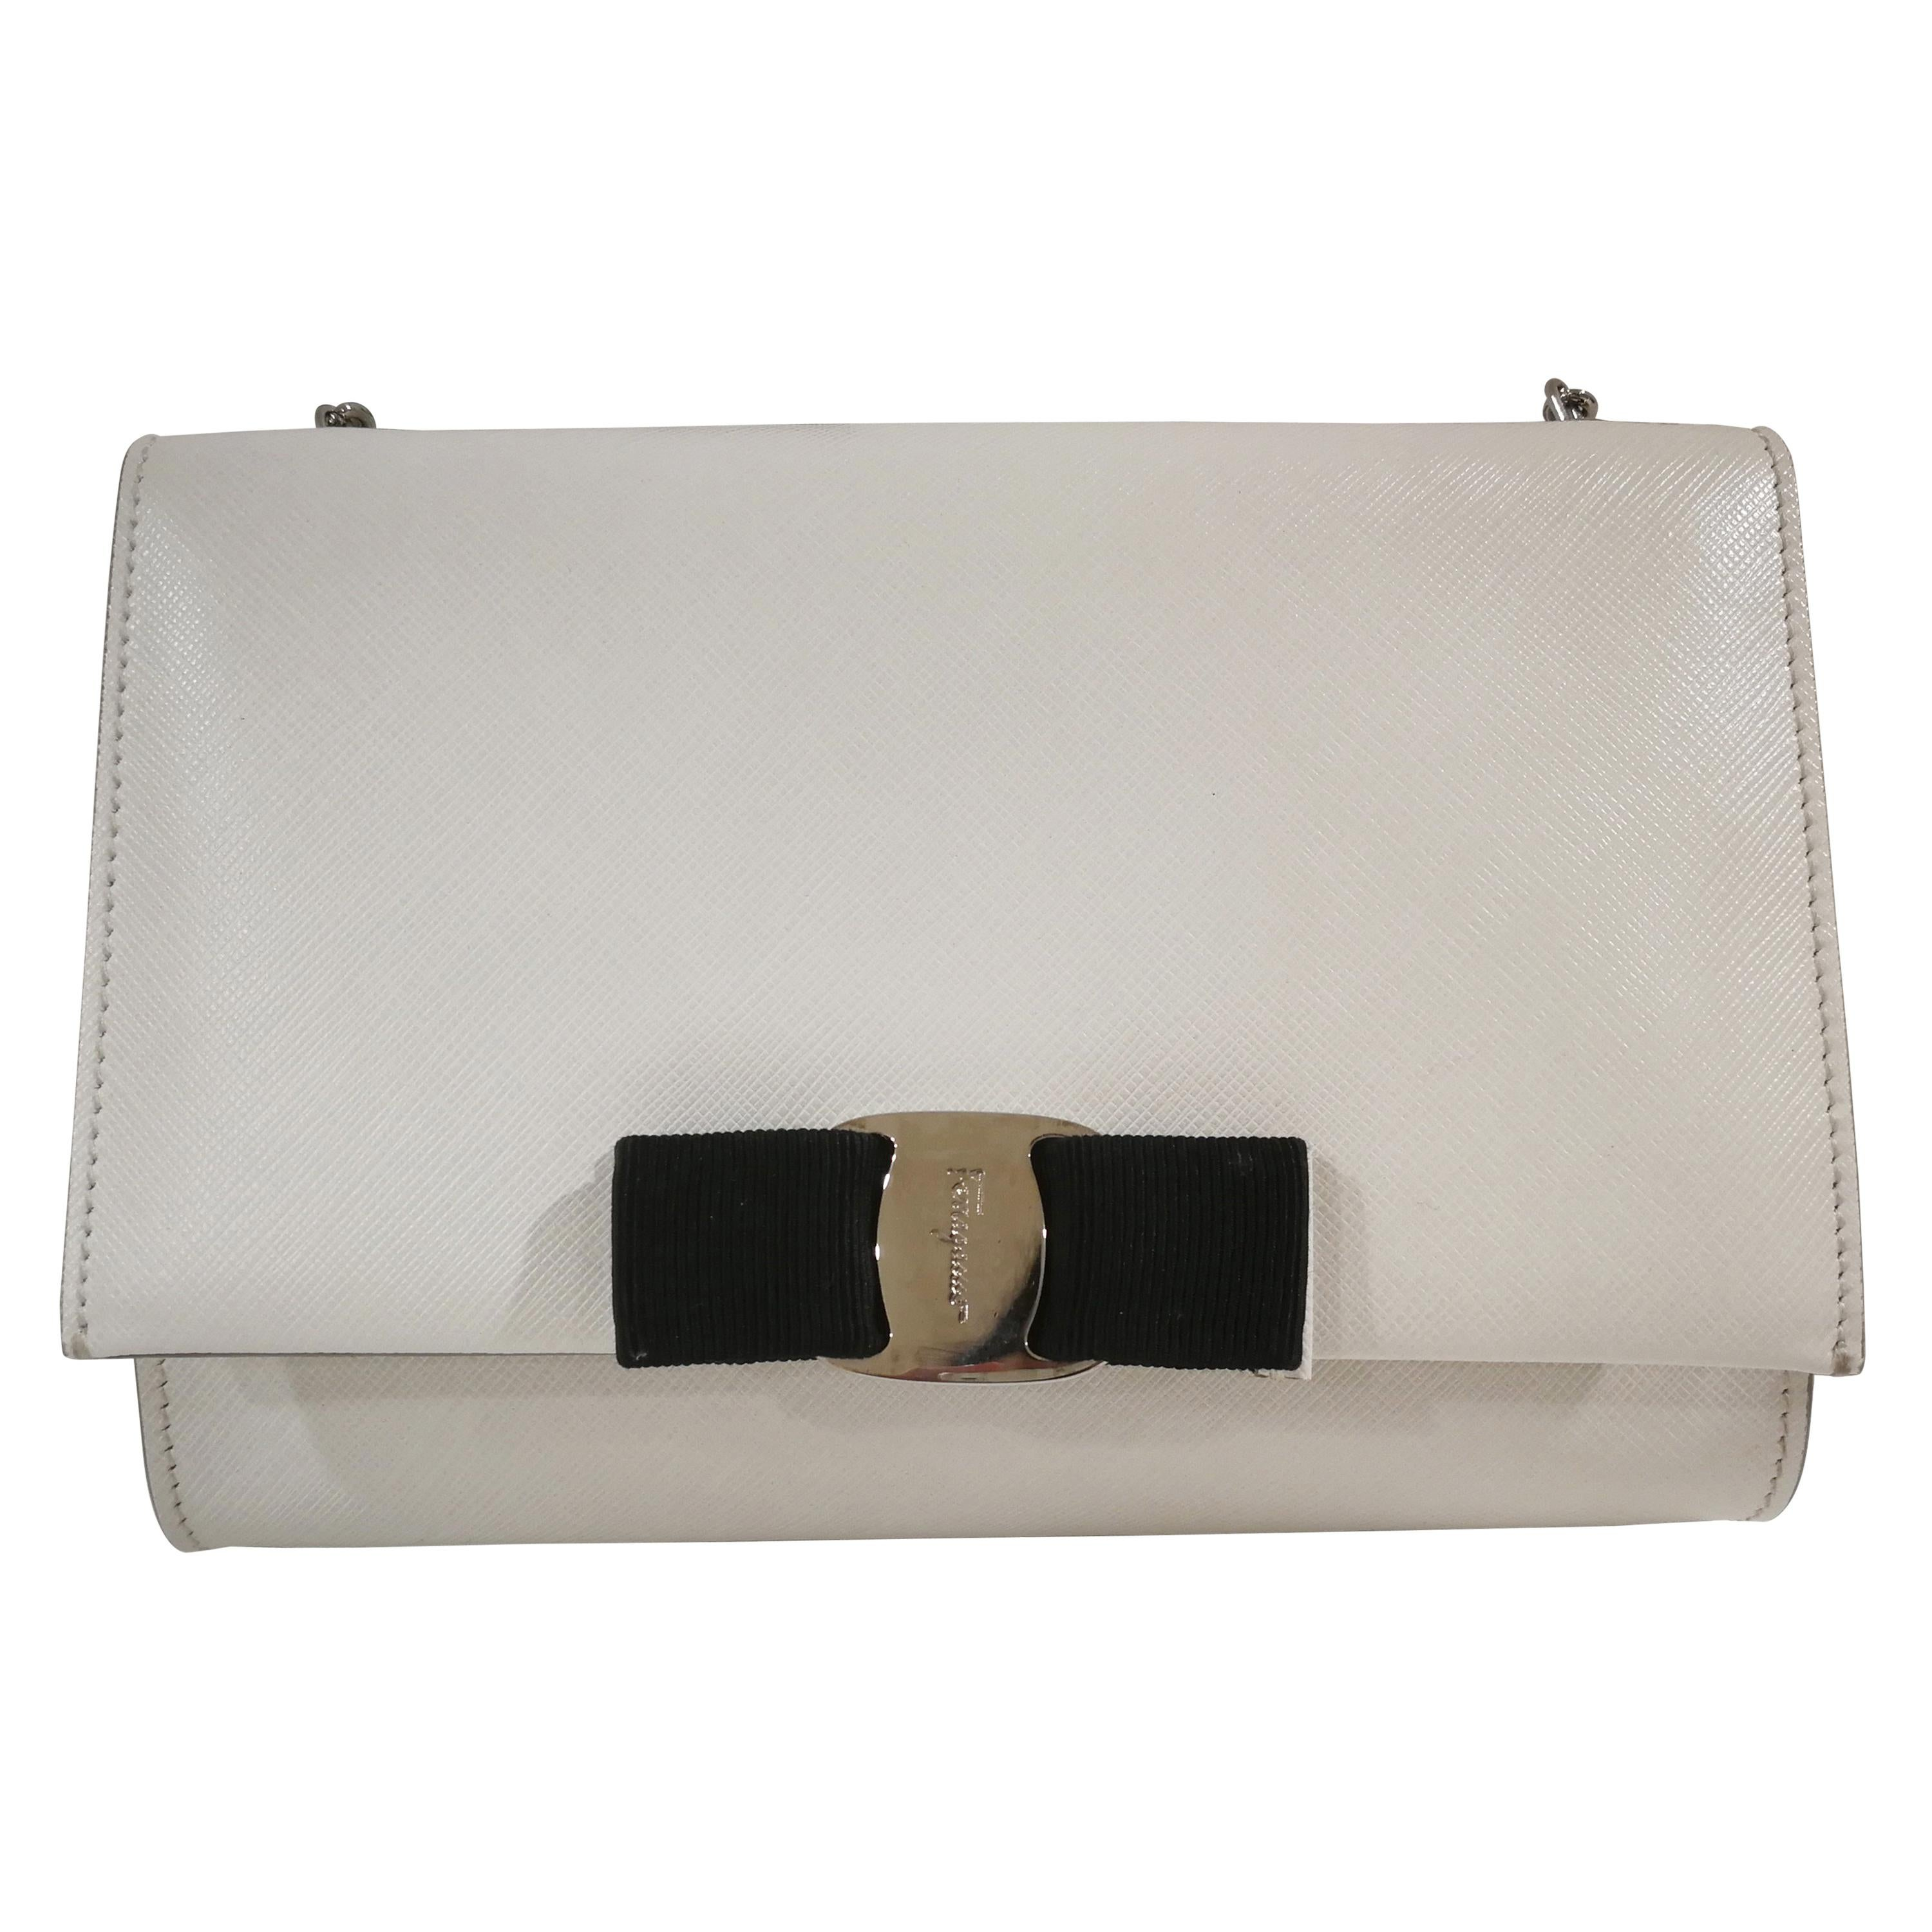 35e5a9922eb6 Salvatore Ferragamo White Leather Shoulder Bag NWOT For Sale at 1stdibs